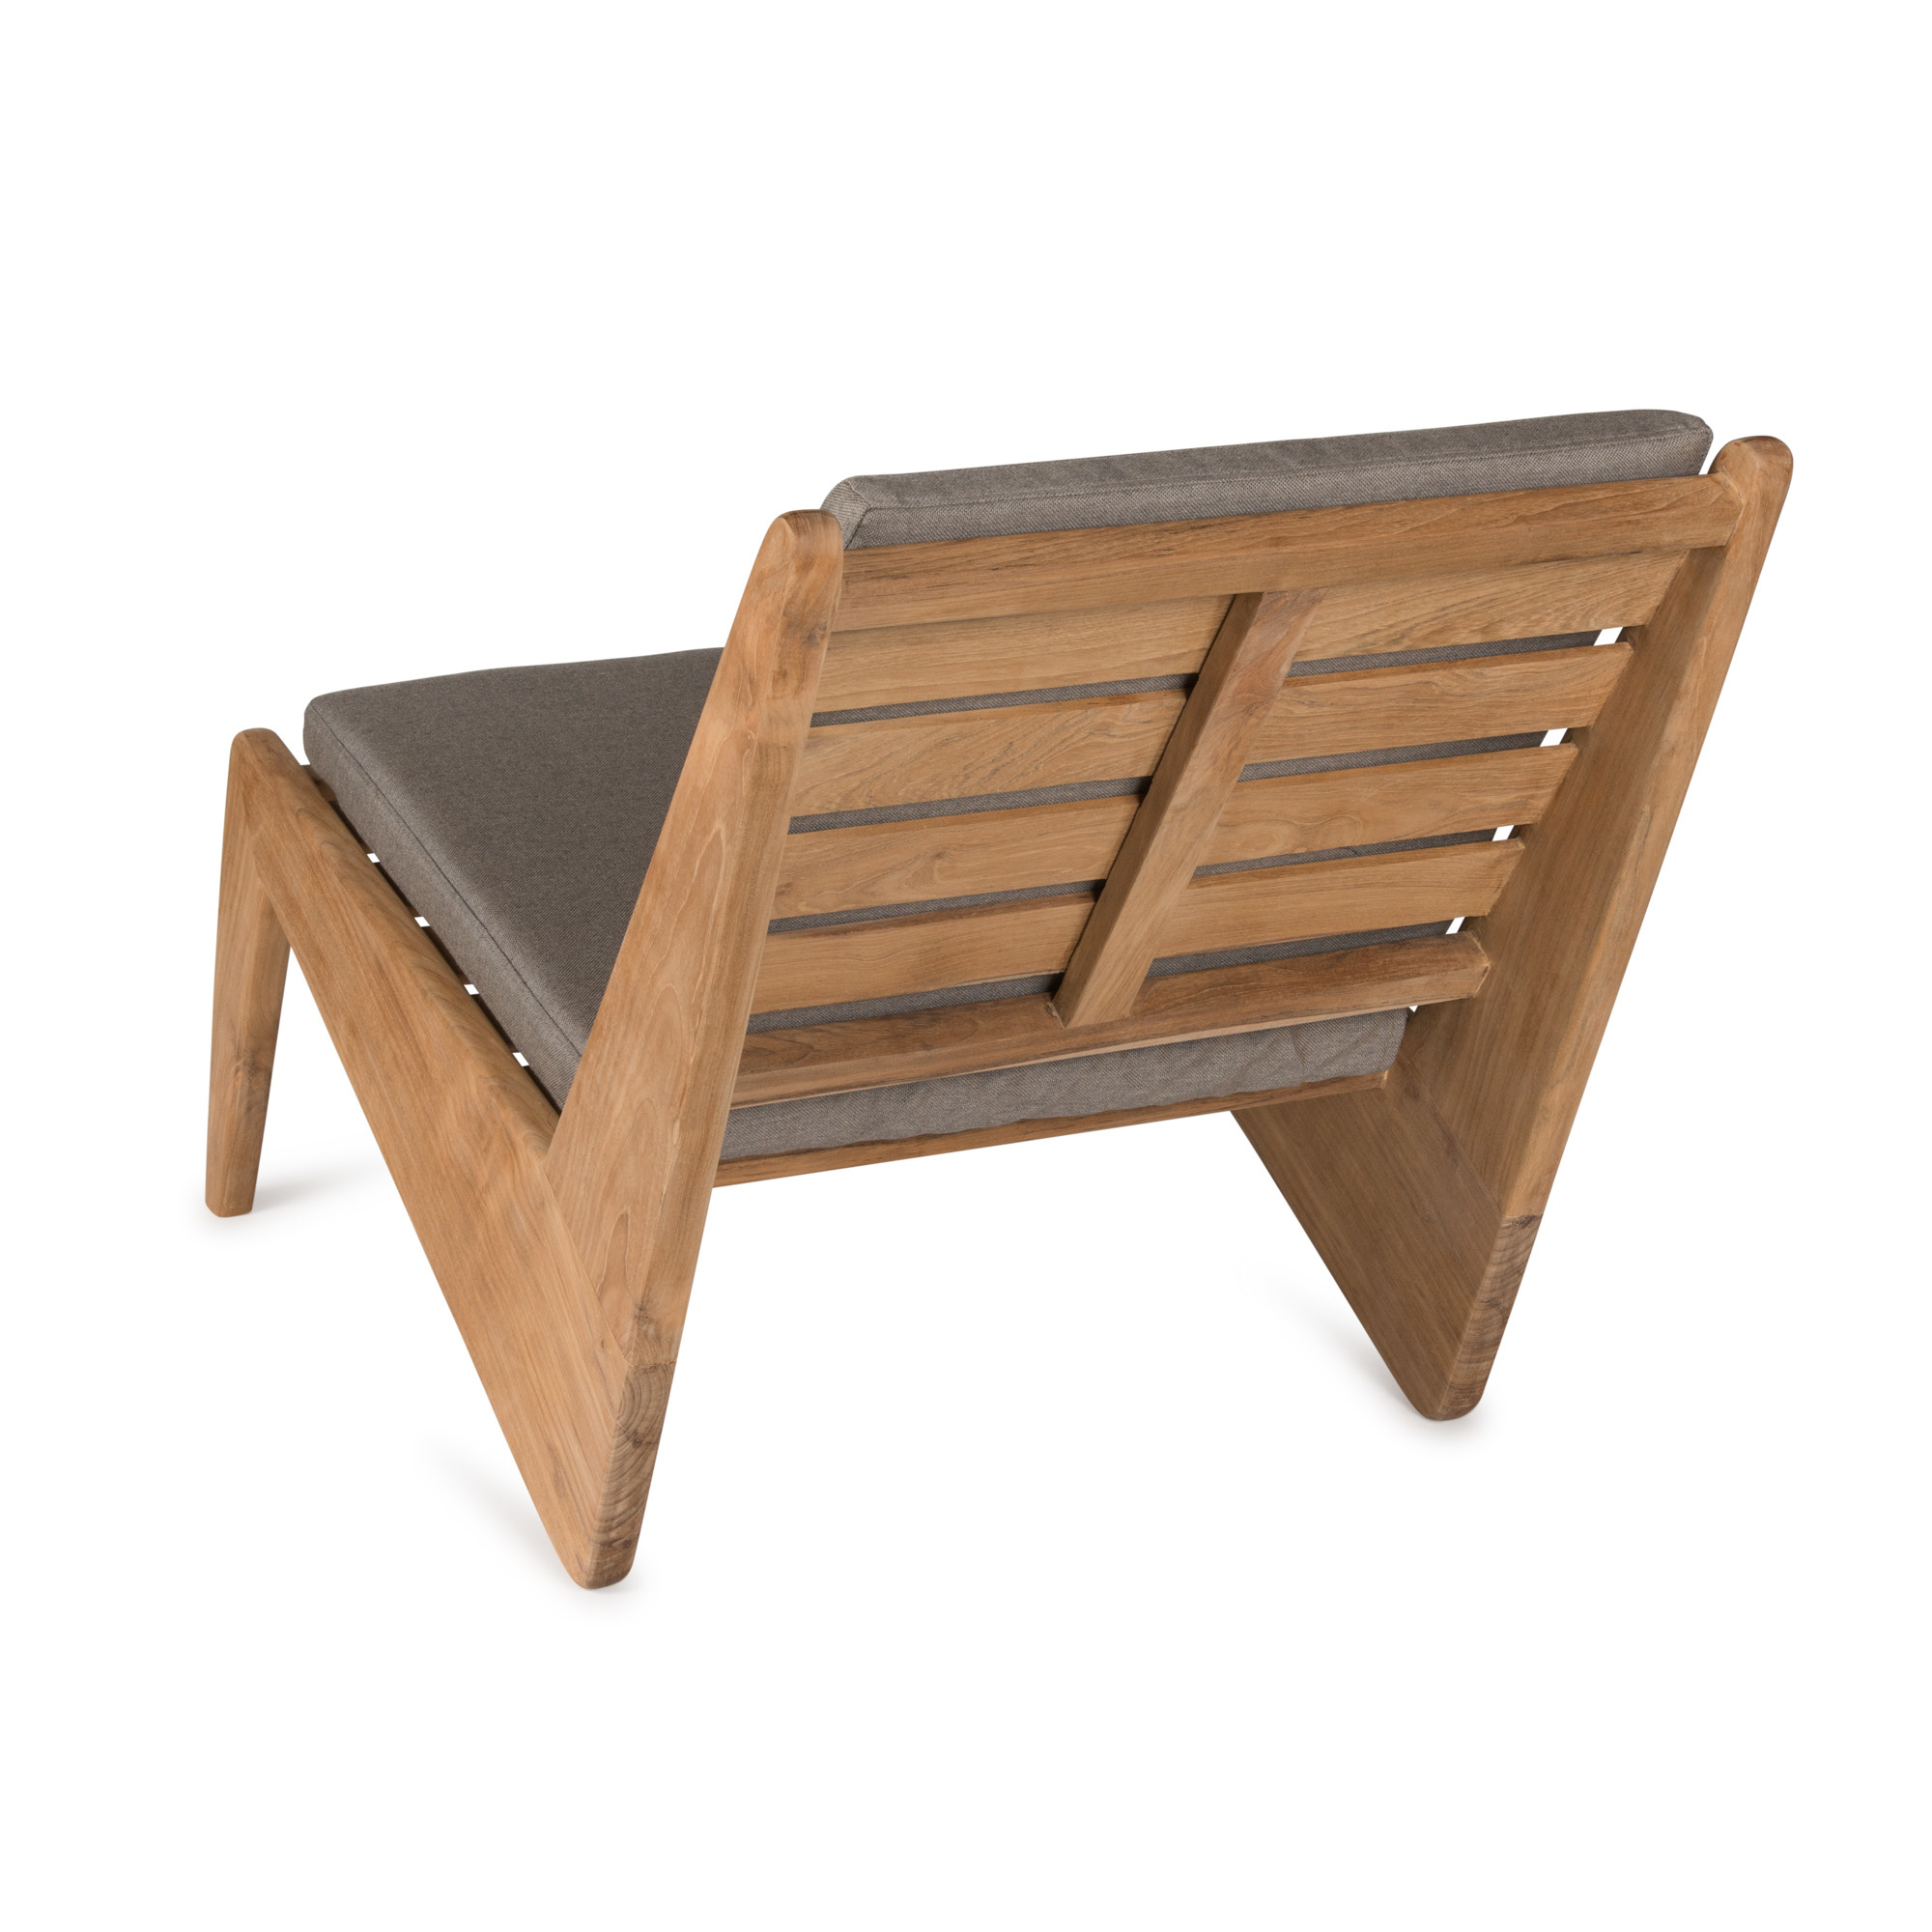 Kangaroo Chair - Teak Outdoor with Cushion-4